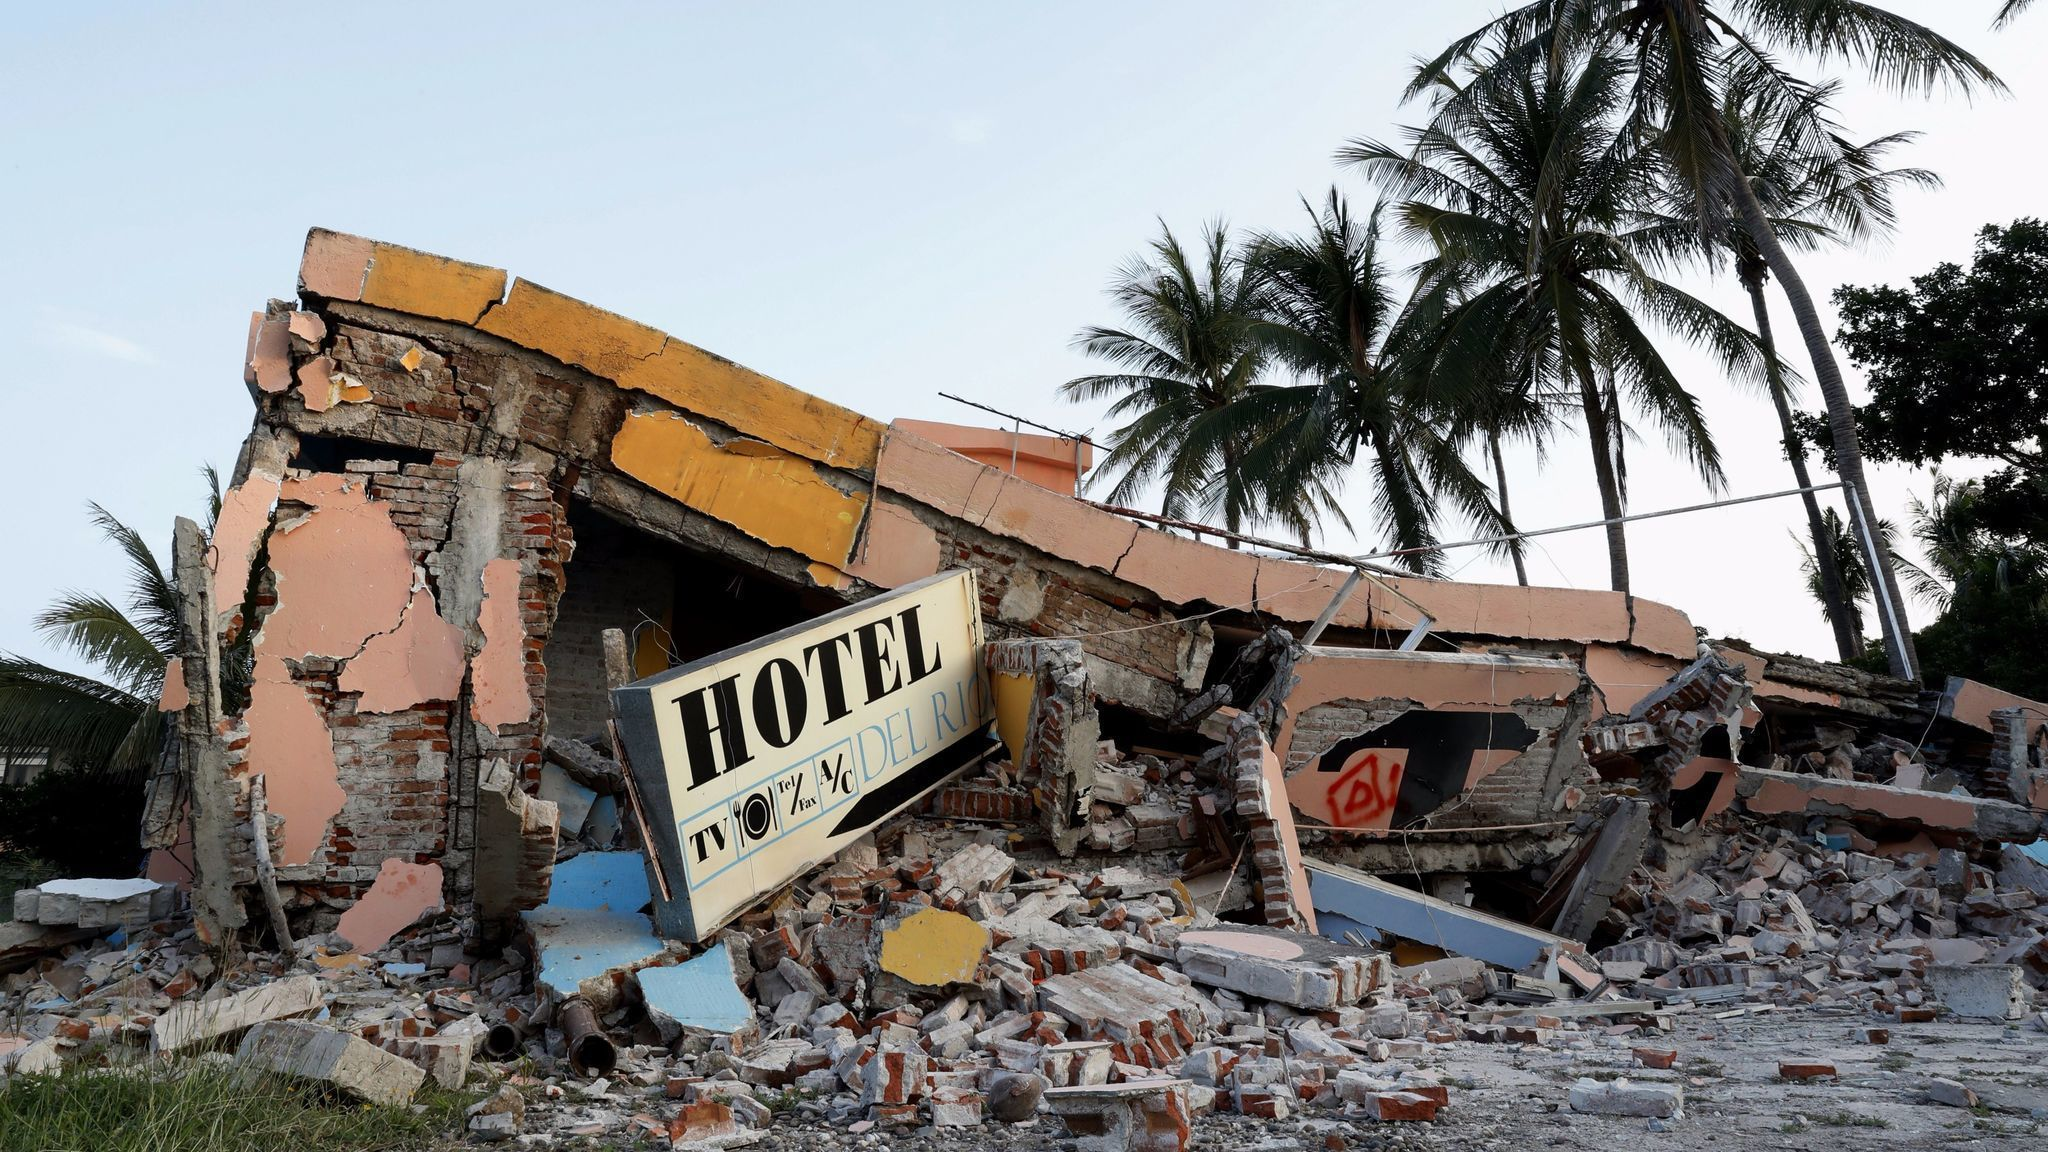 Small earthquakes can increase risk of the Big One. Now ...